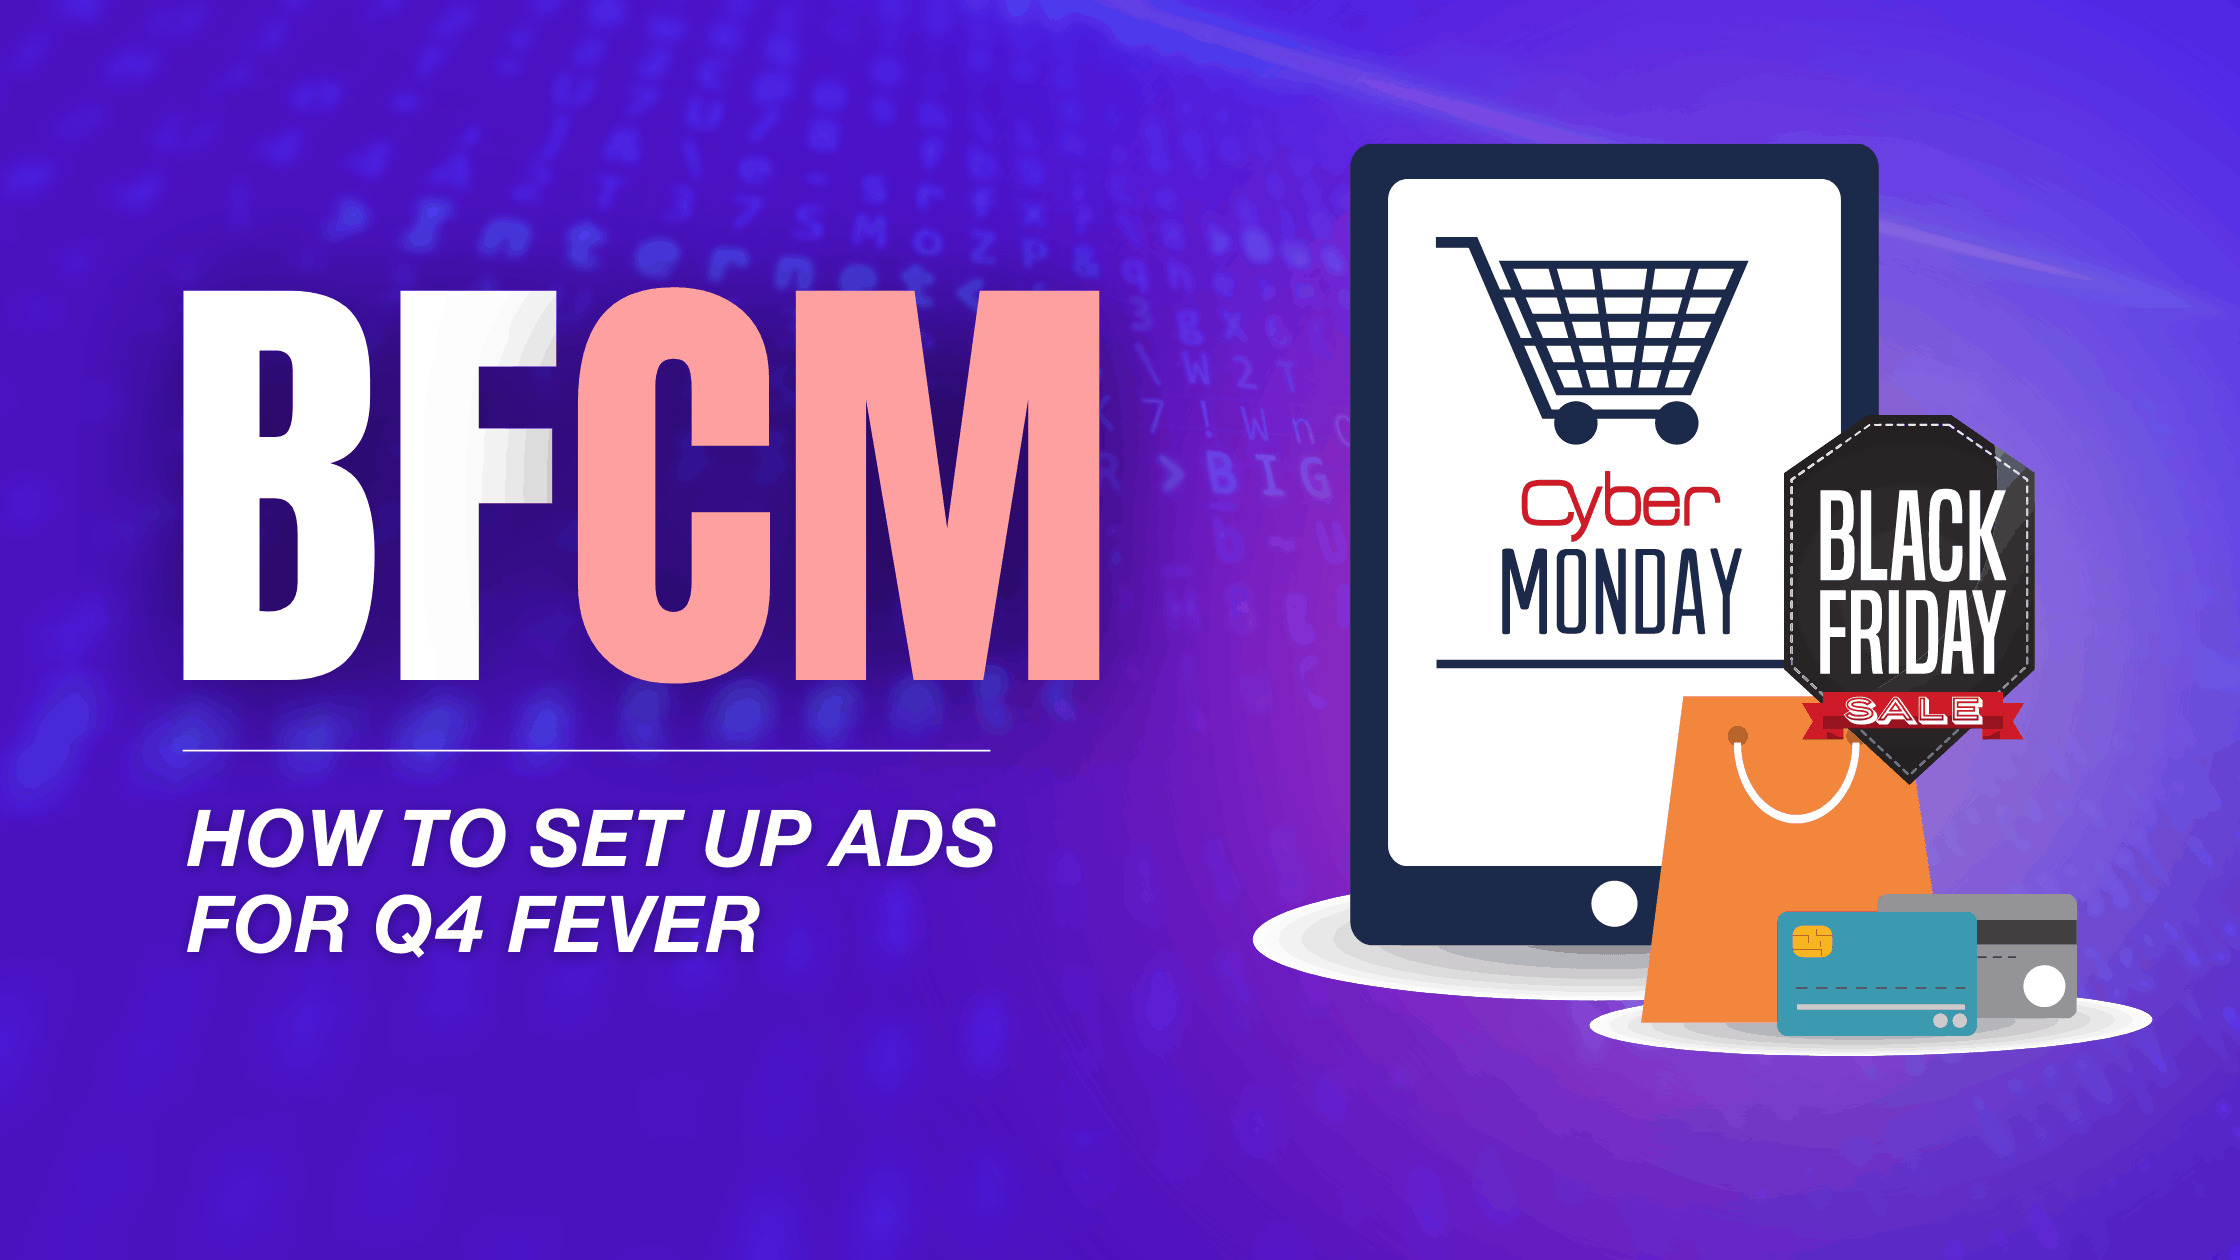 bfcm black friday cyber monday 2020